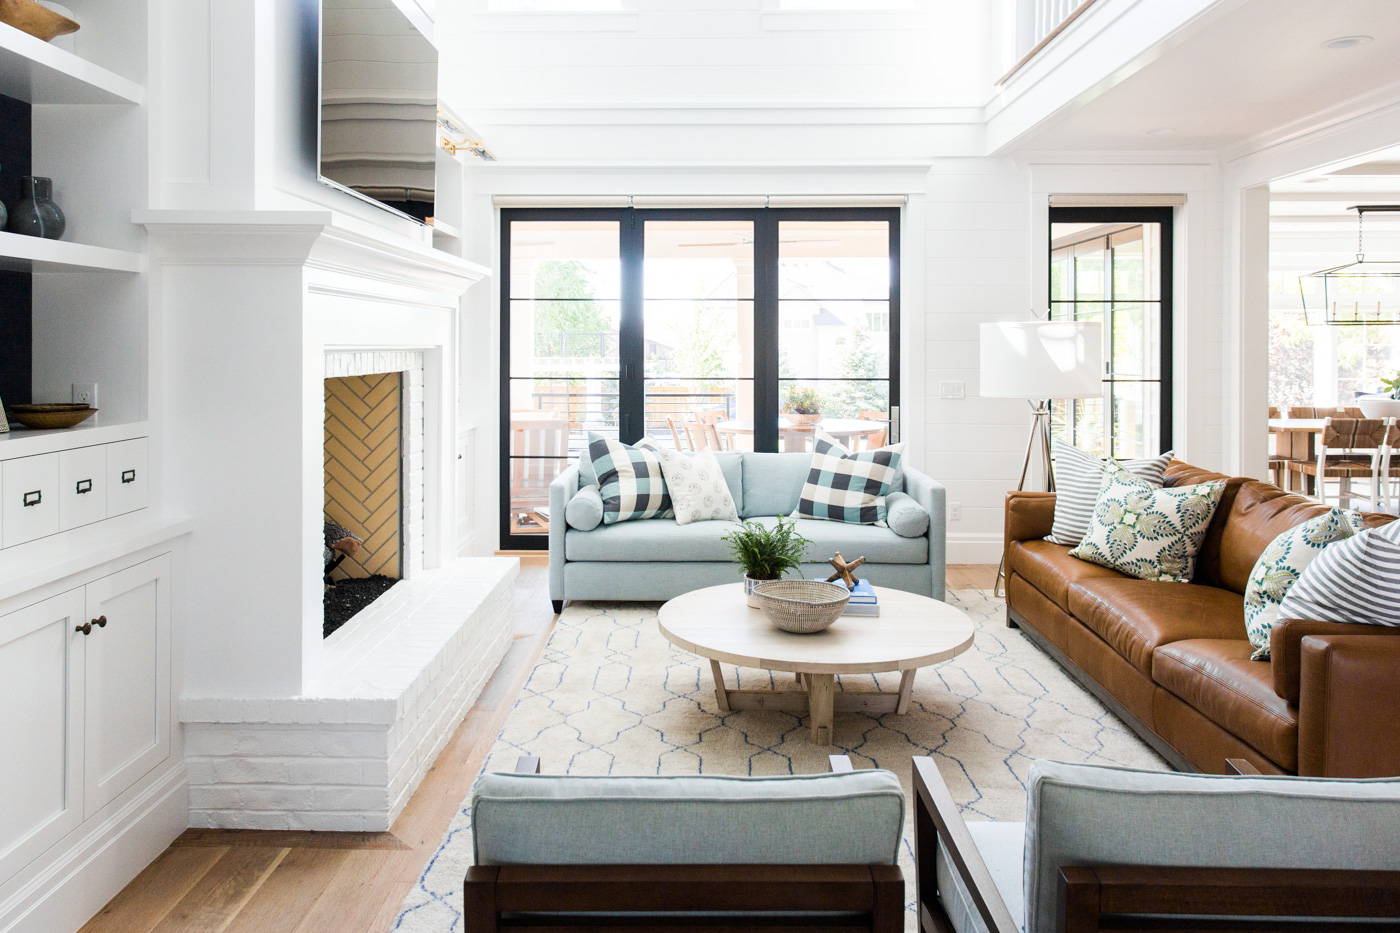 Blue love seat next to brown sofa in living room